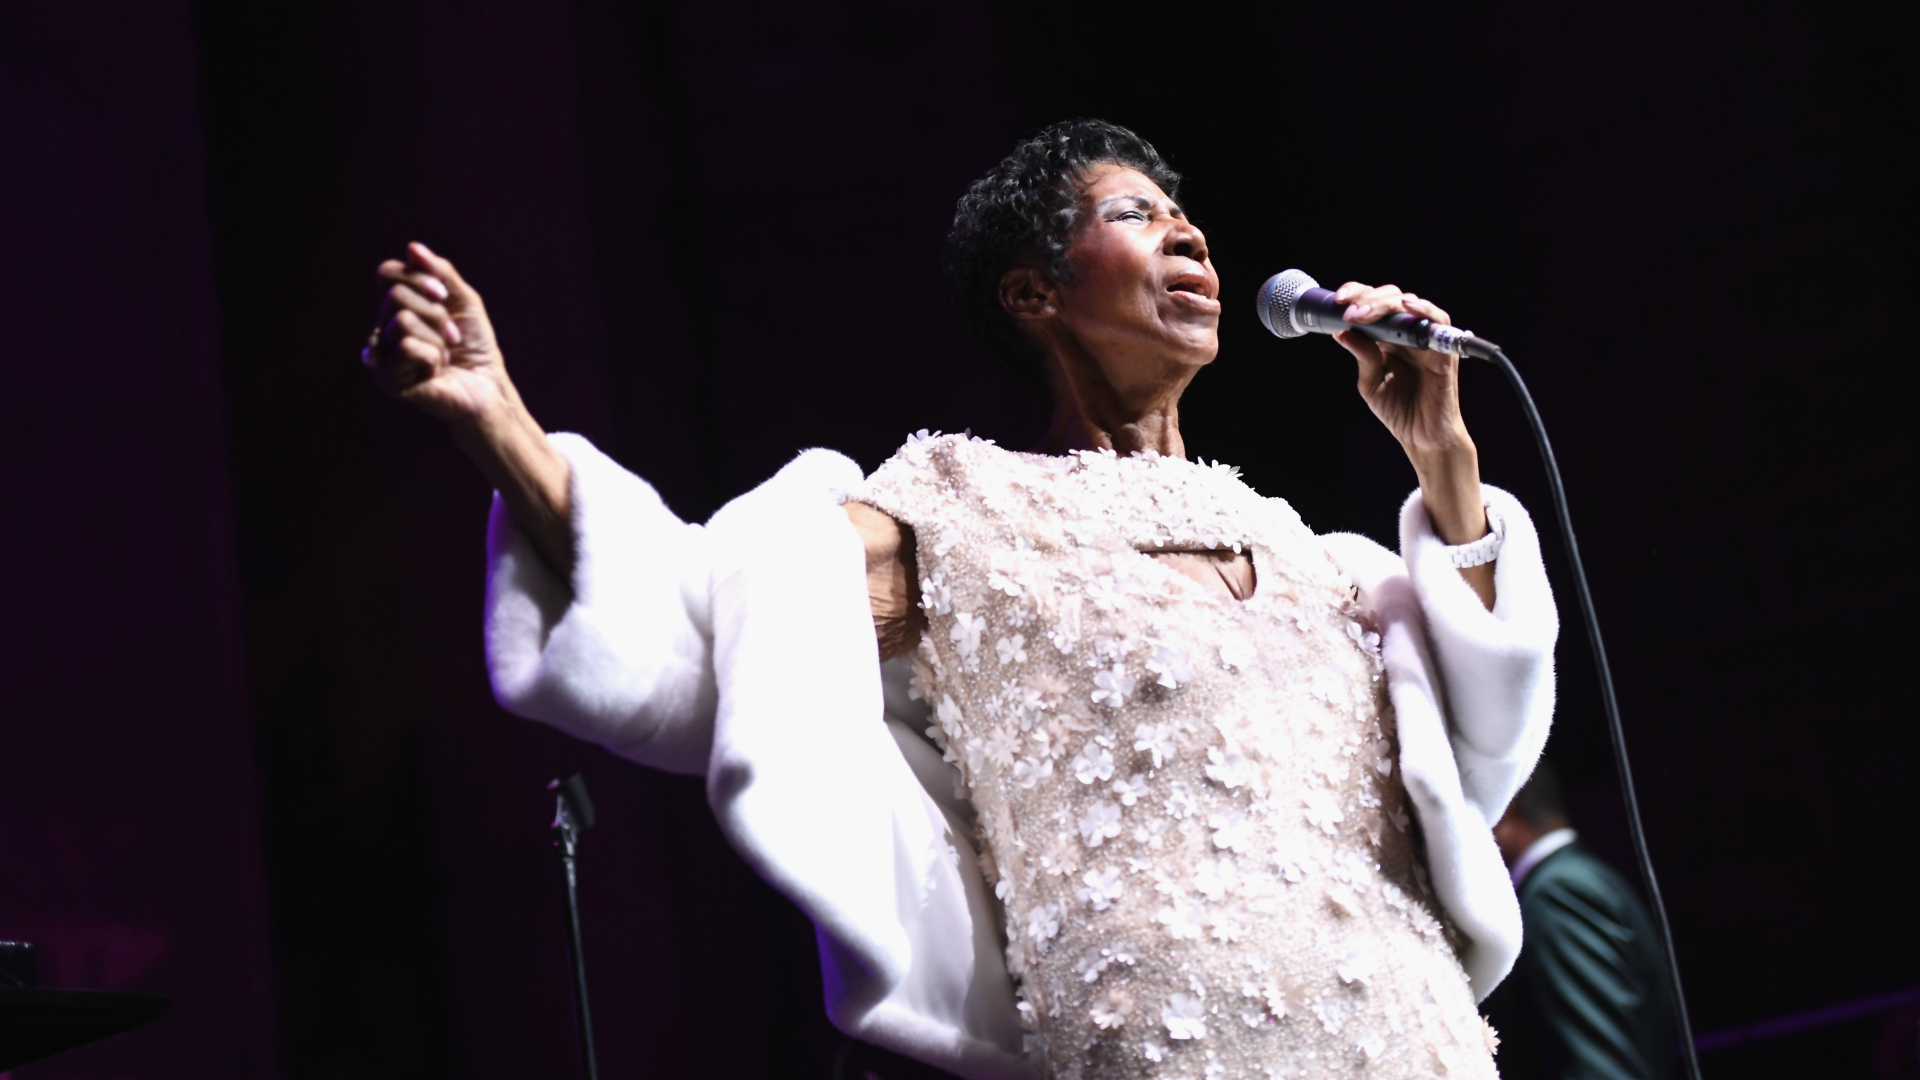 aretha franklin 110717 081318 getty_1534204459882.jpg.jpg